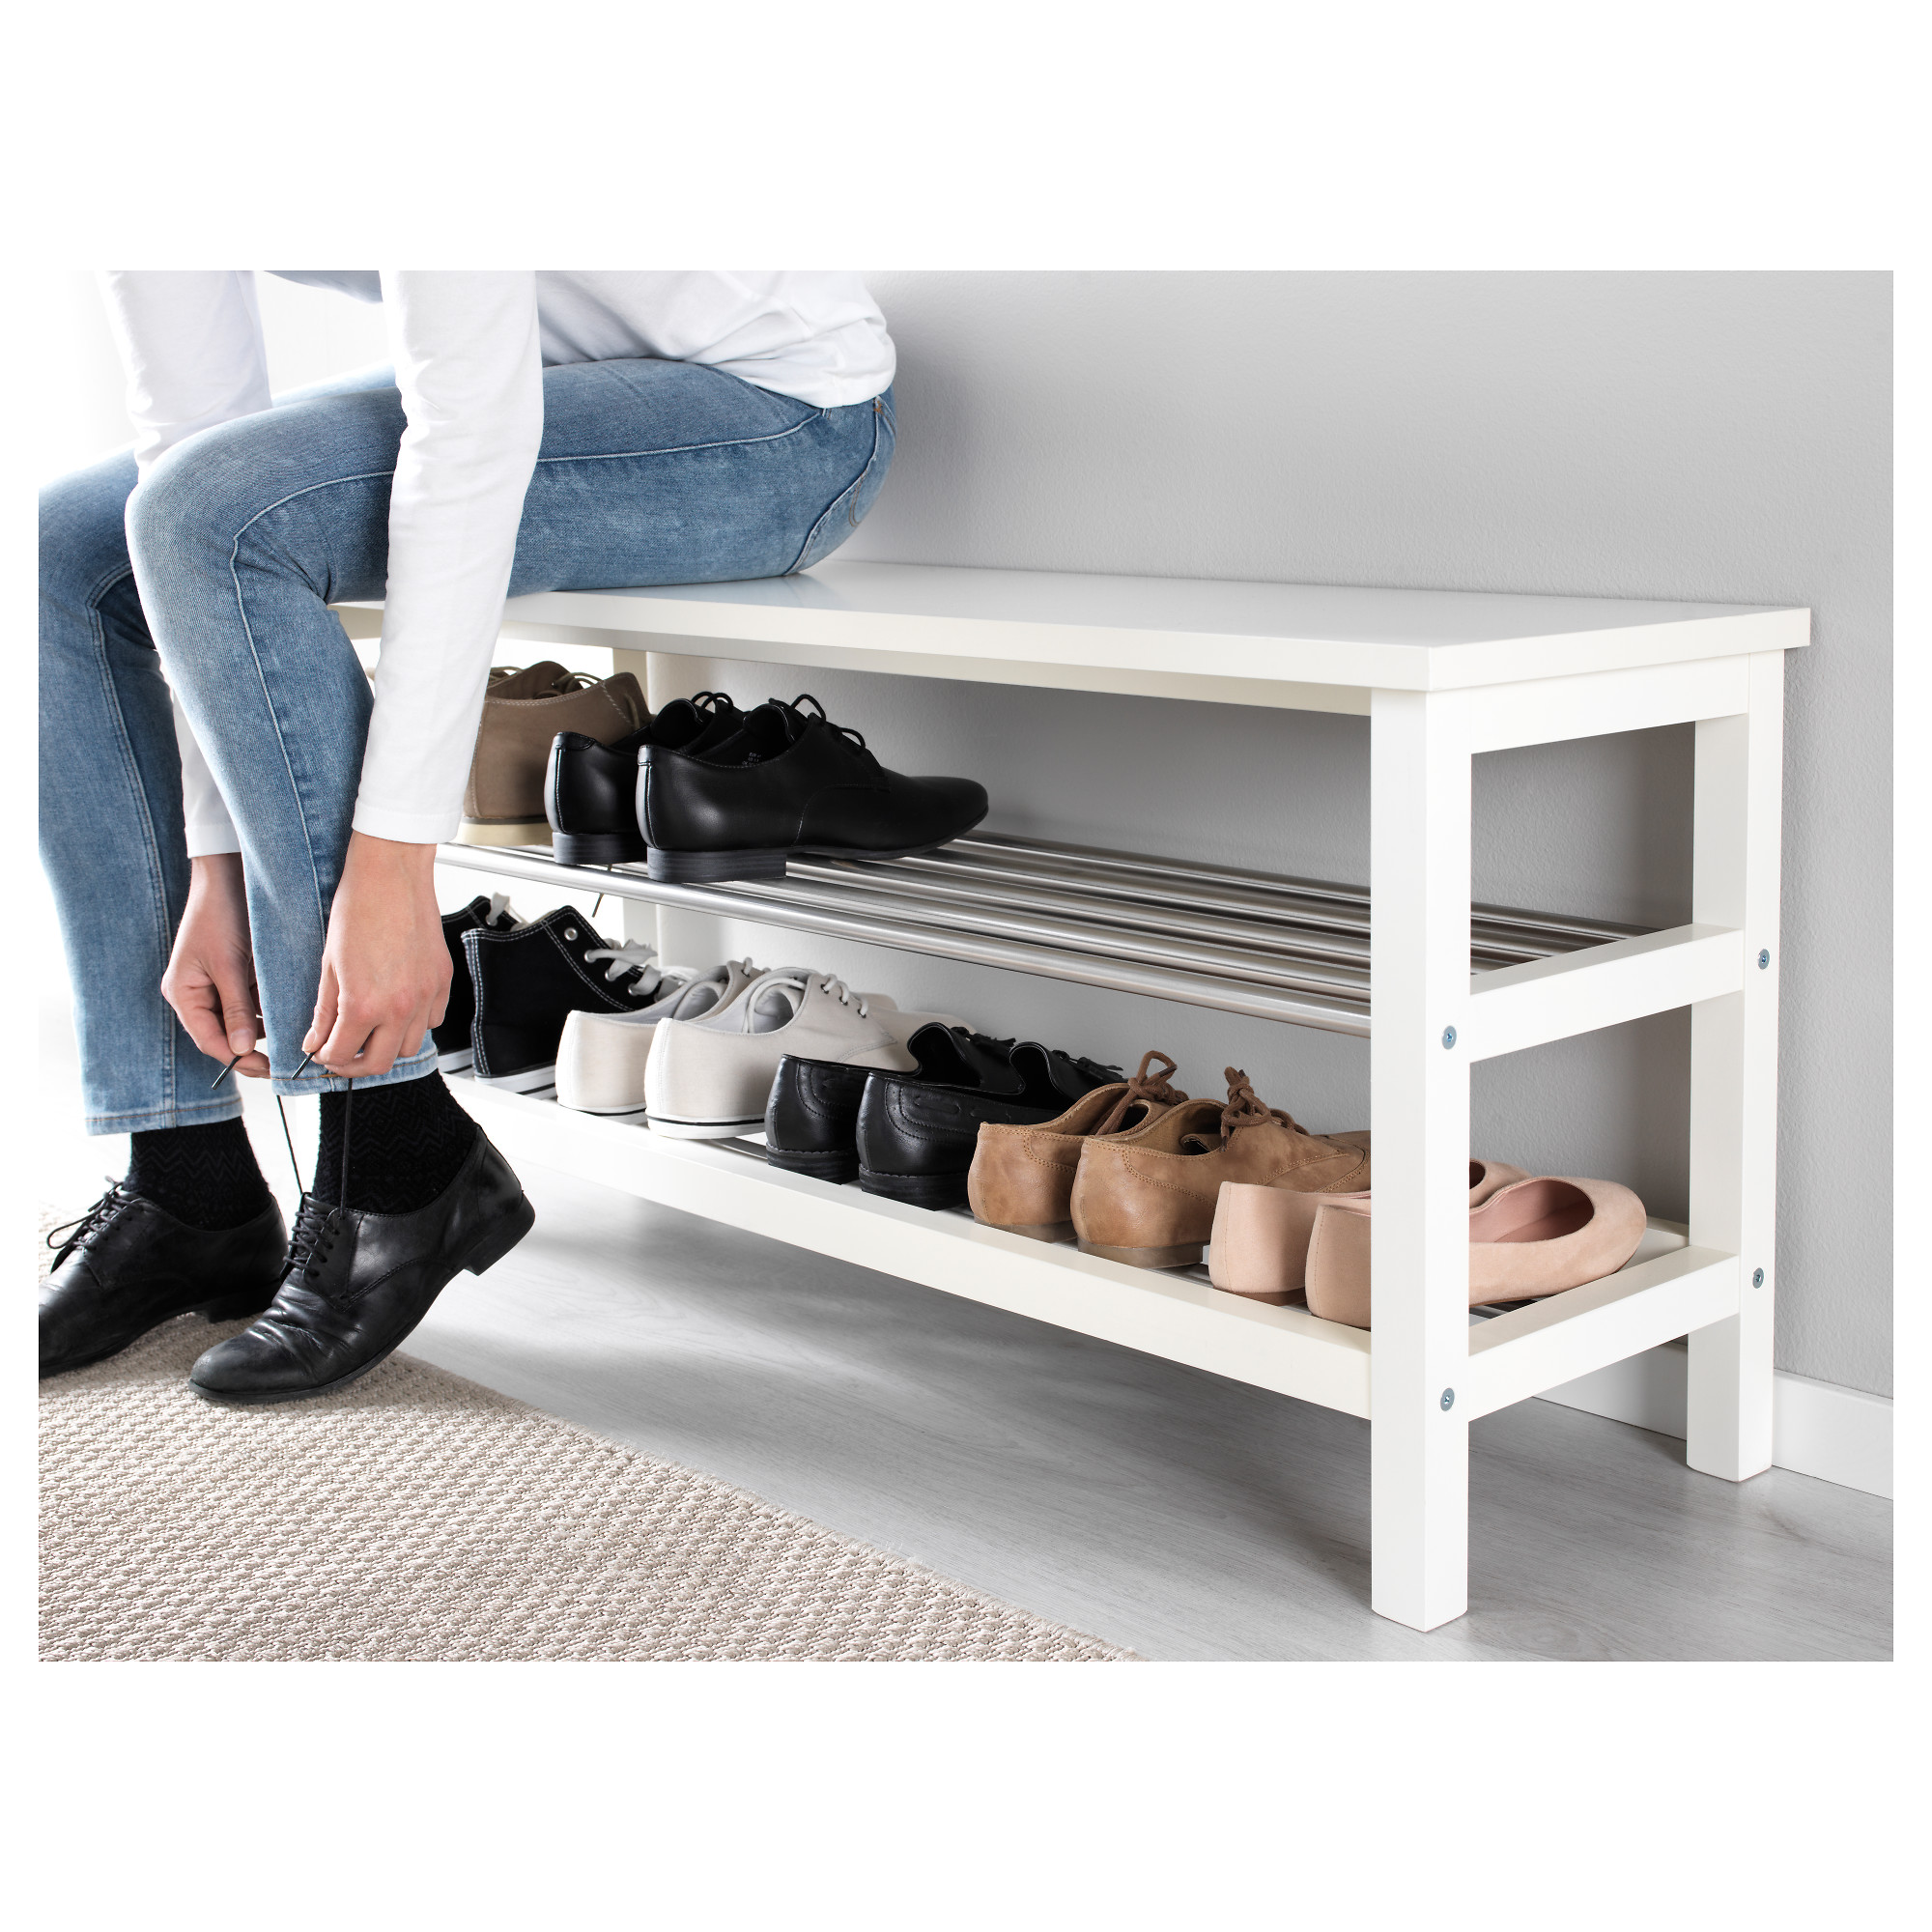 Design Ikea Shoe Racks tjusig bench with shoe storage white ikea